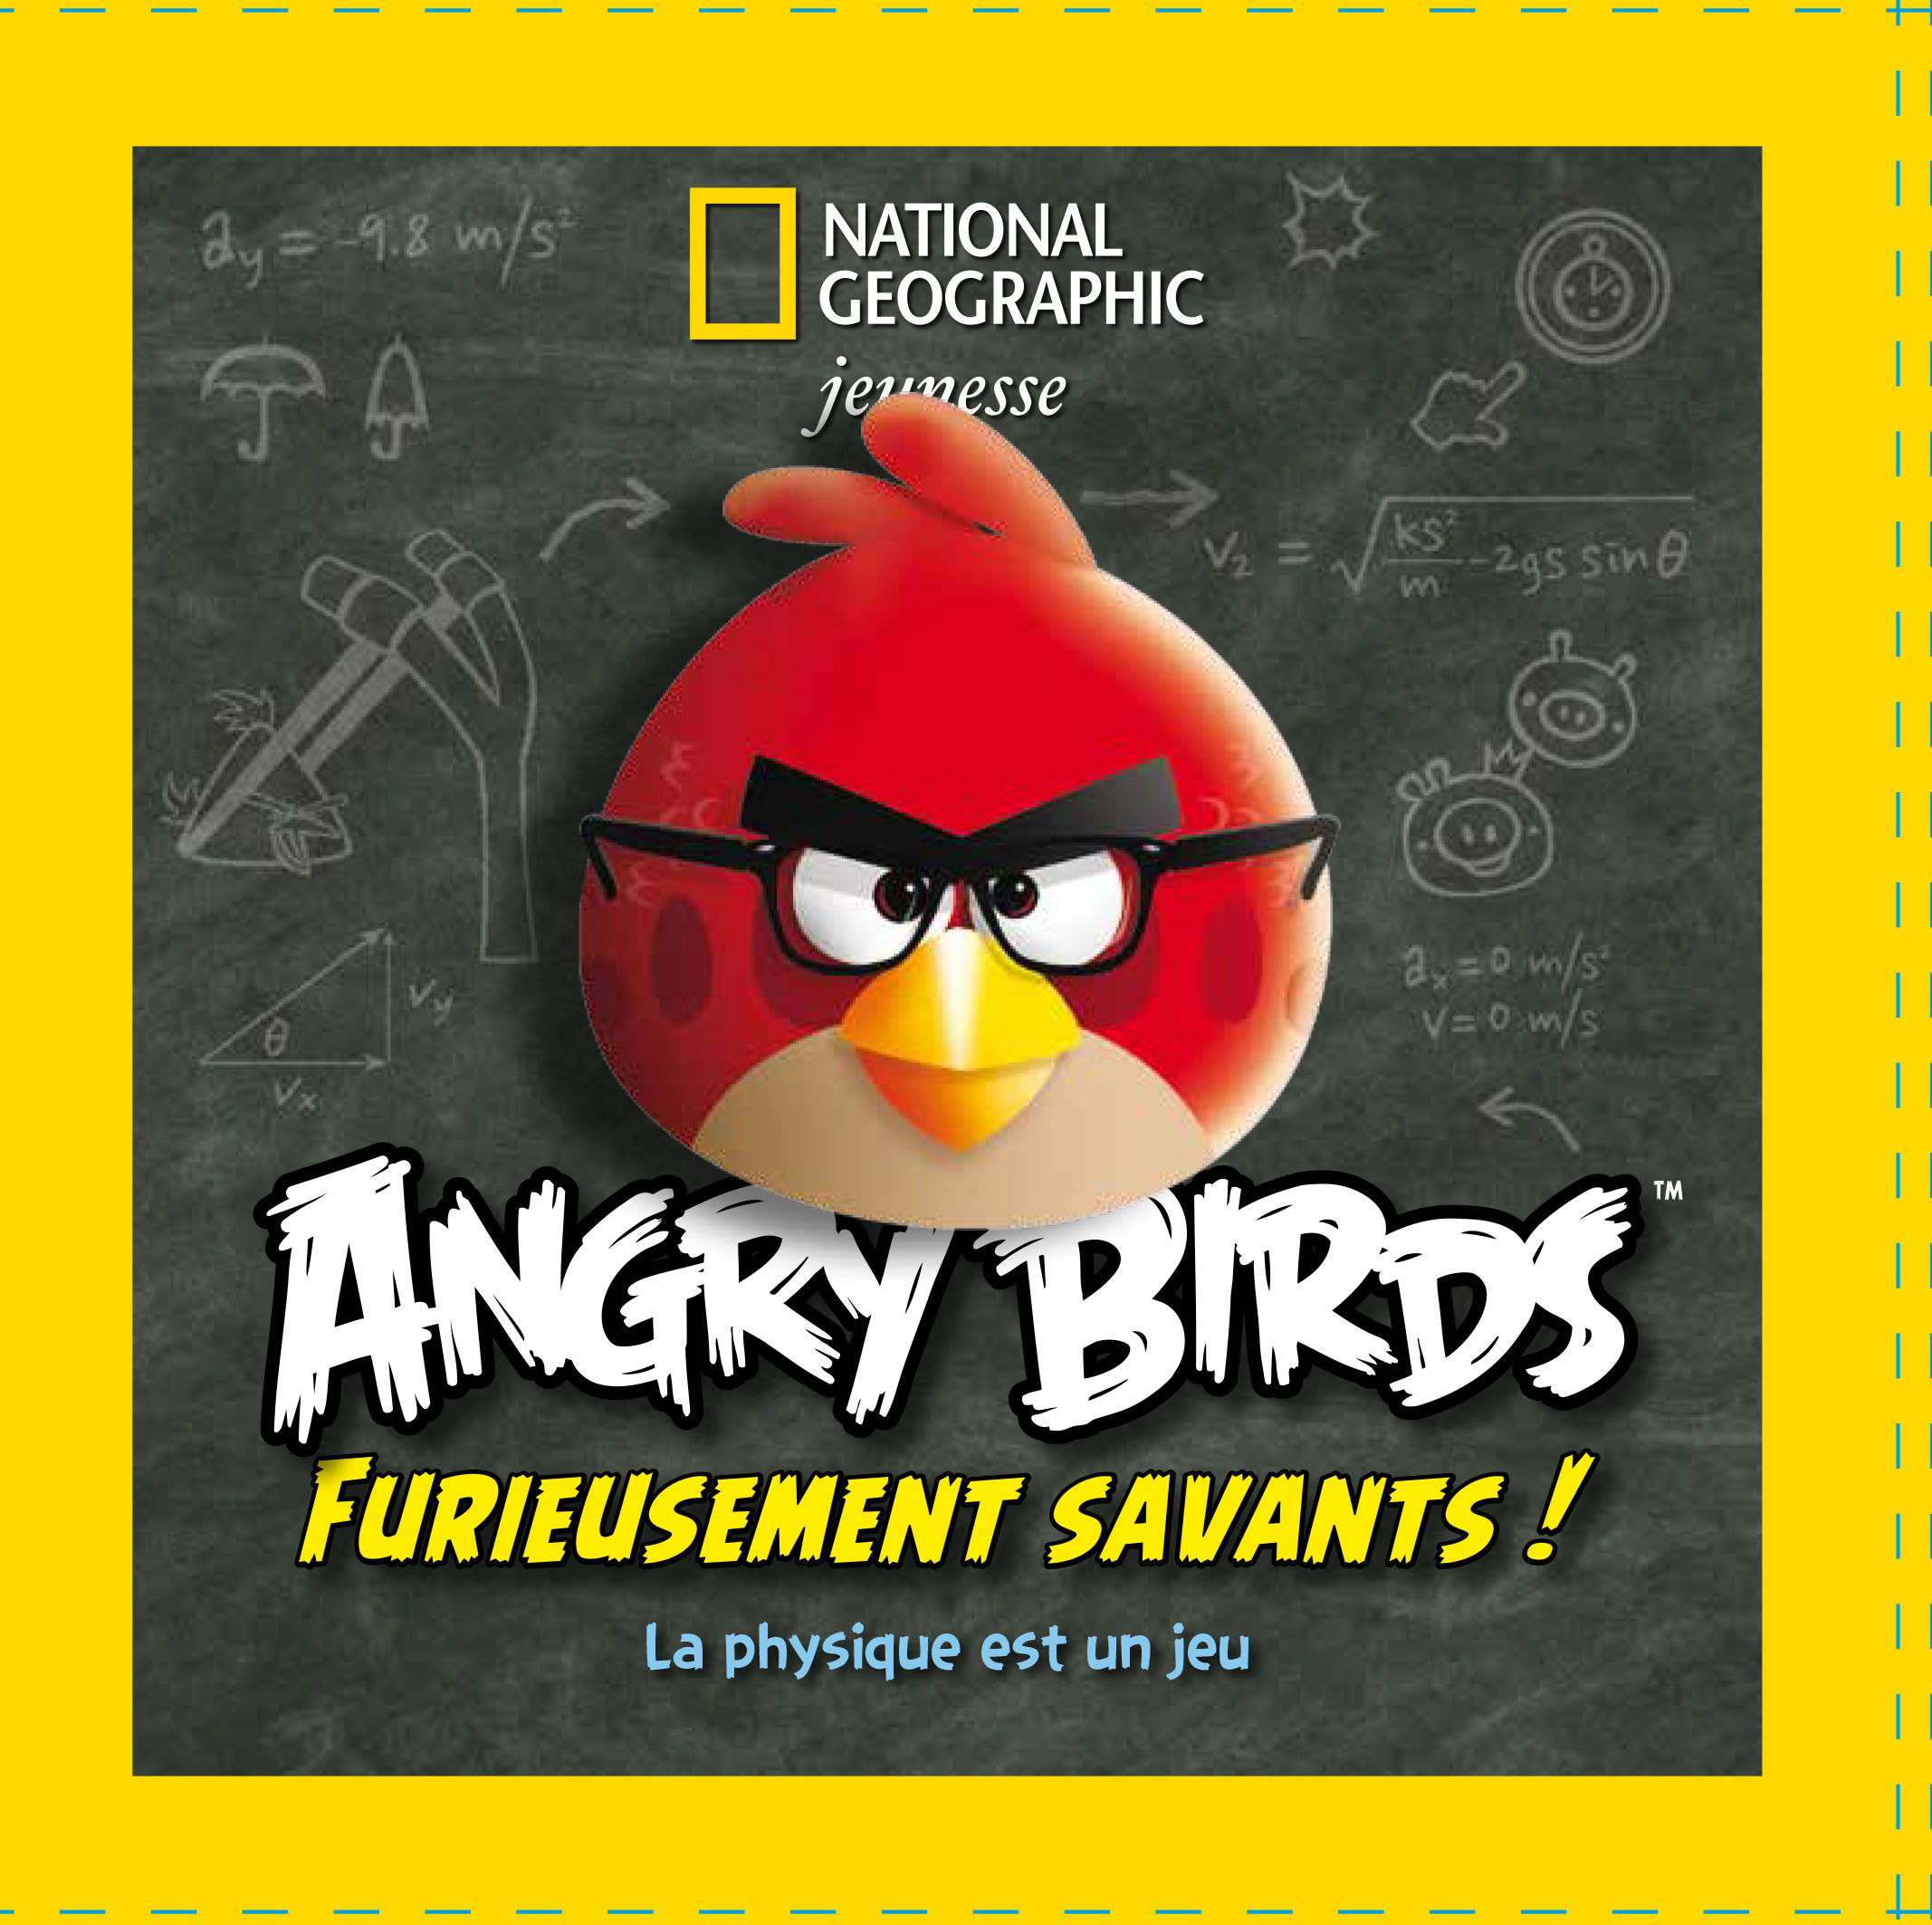 Angry Birds furieusement savants